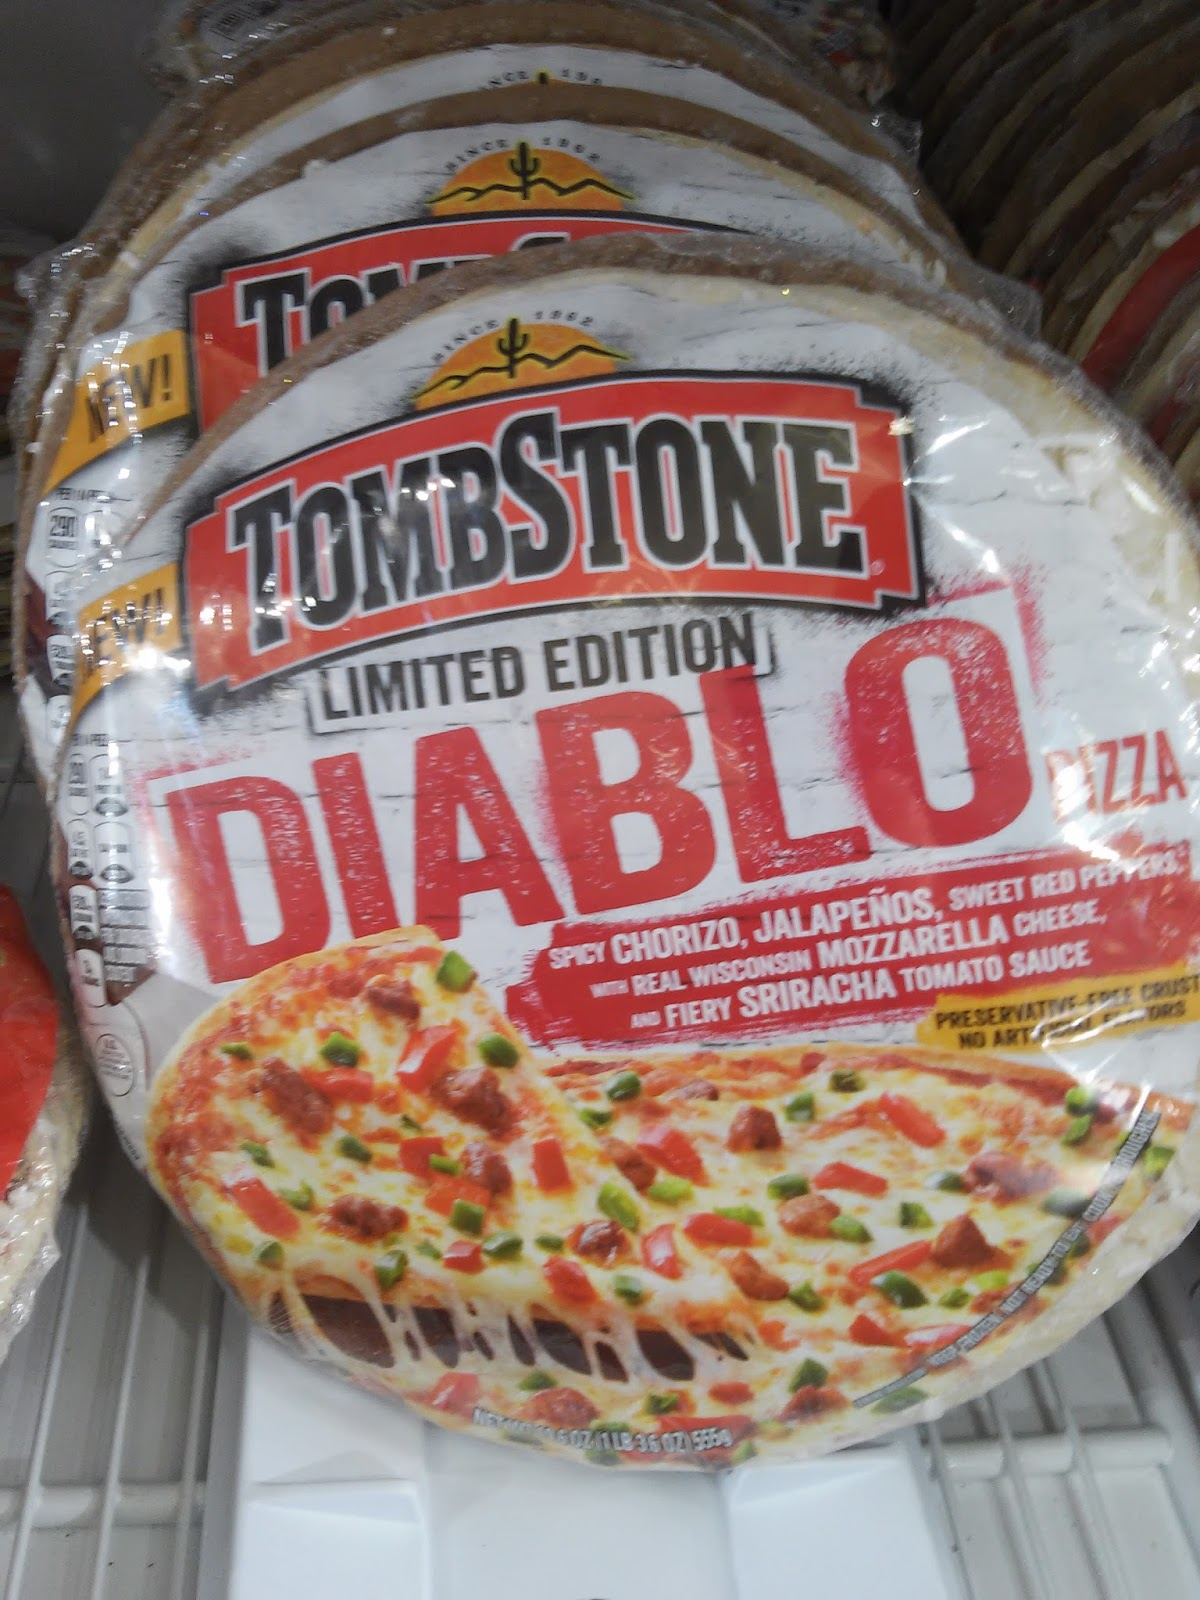 TOMBSTONE ® Original Pizza. All of your favorite toppings, on a thin crispy crust, with our signature zesty sauce and % real cheese - the frozen pizza pioneer since !